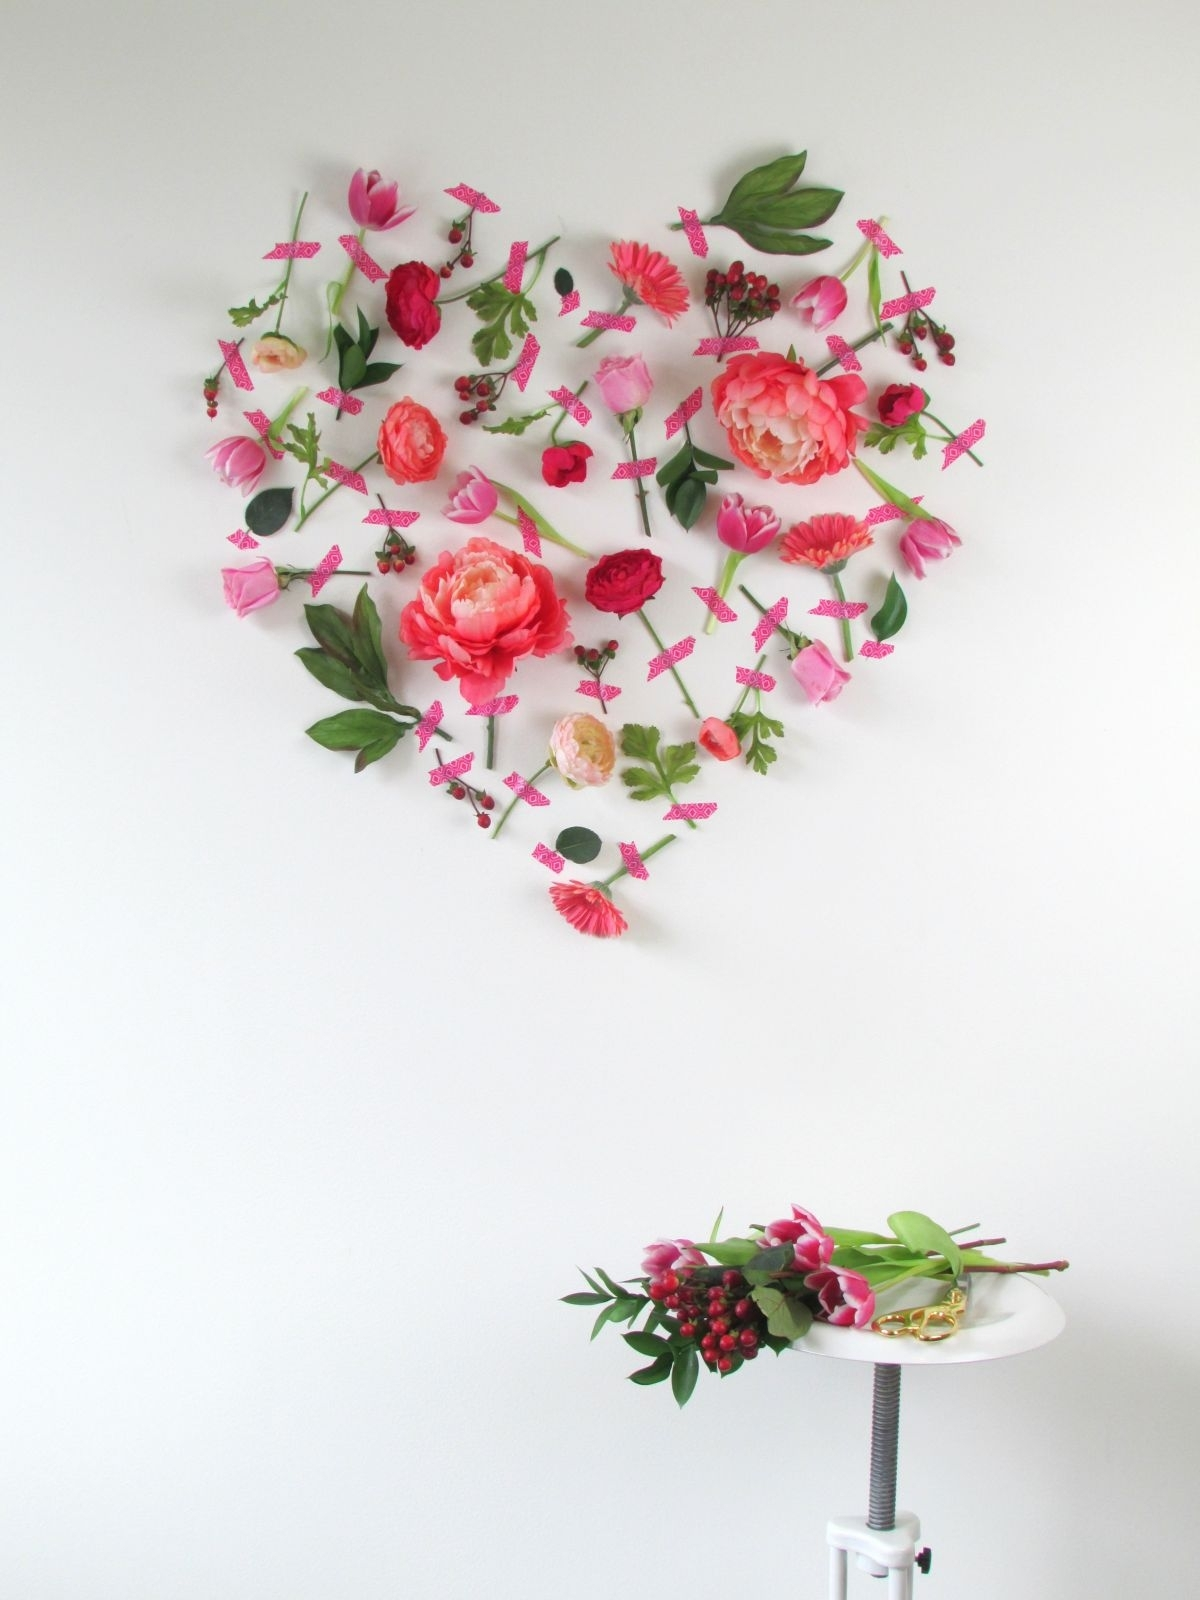 Valentines Day Flower Cool Flower Wall Art – Wall Decoration Ideas Intended For Most Up To Date Floral Wall Art (View 9 of 20)